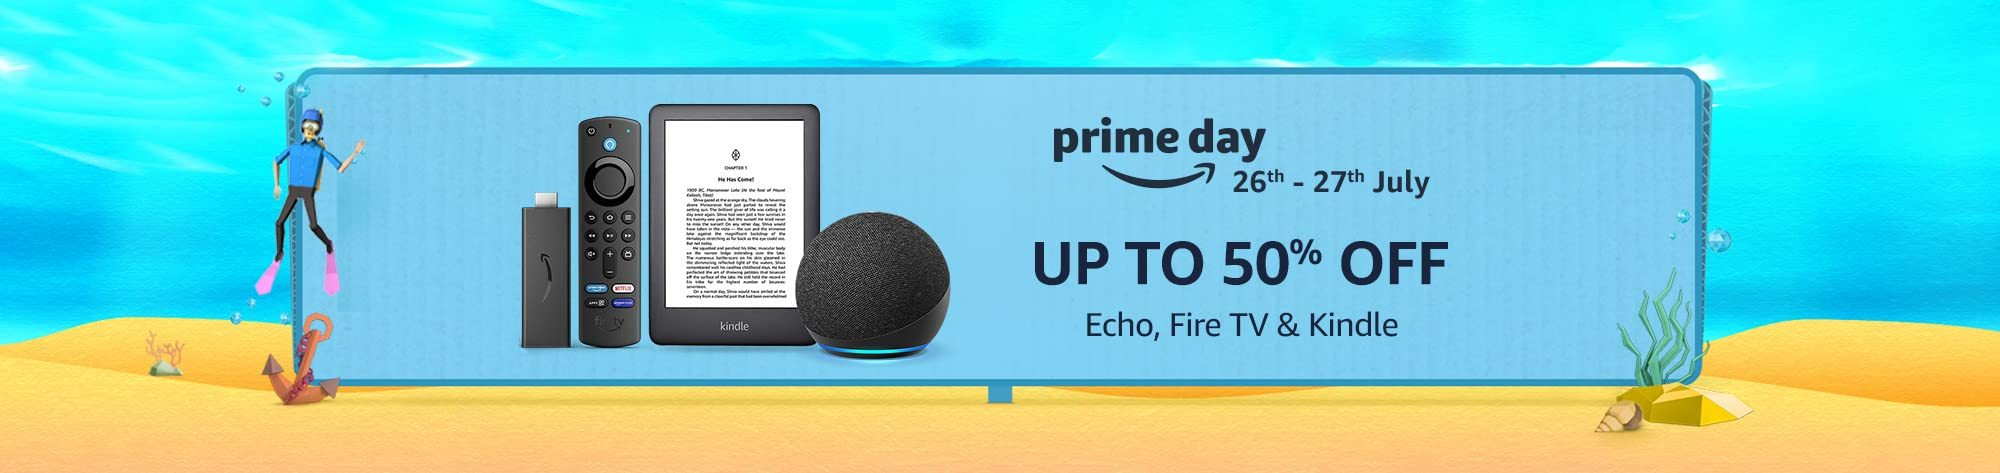 Amazon Offers On Echo, Fire TV, Kindle And More